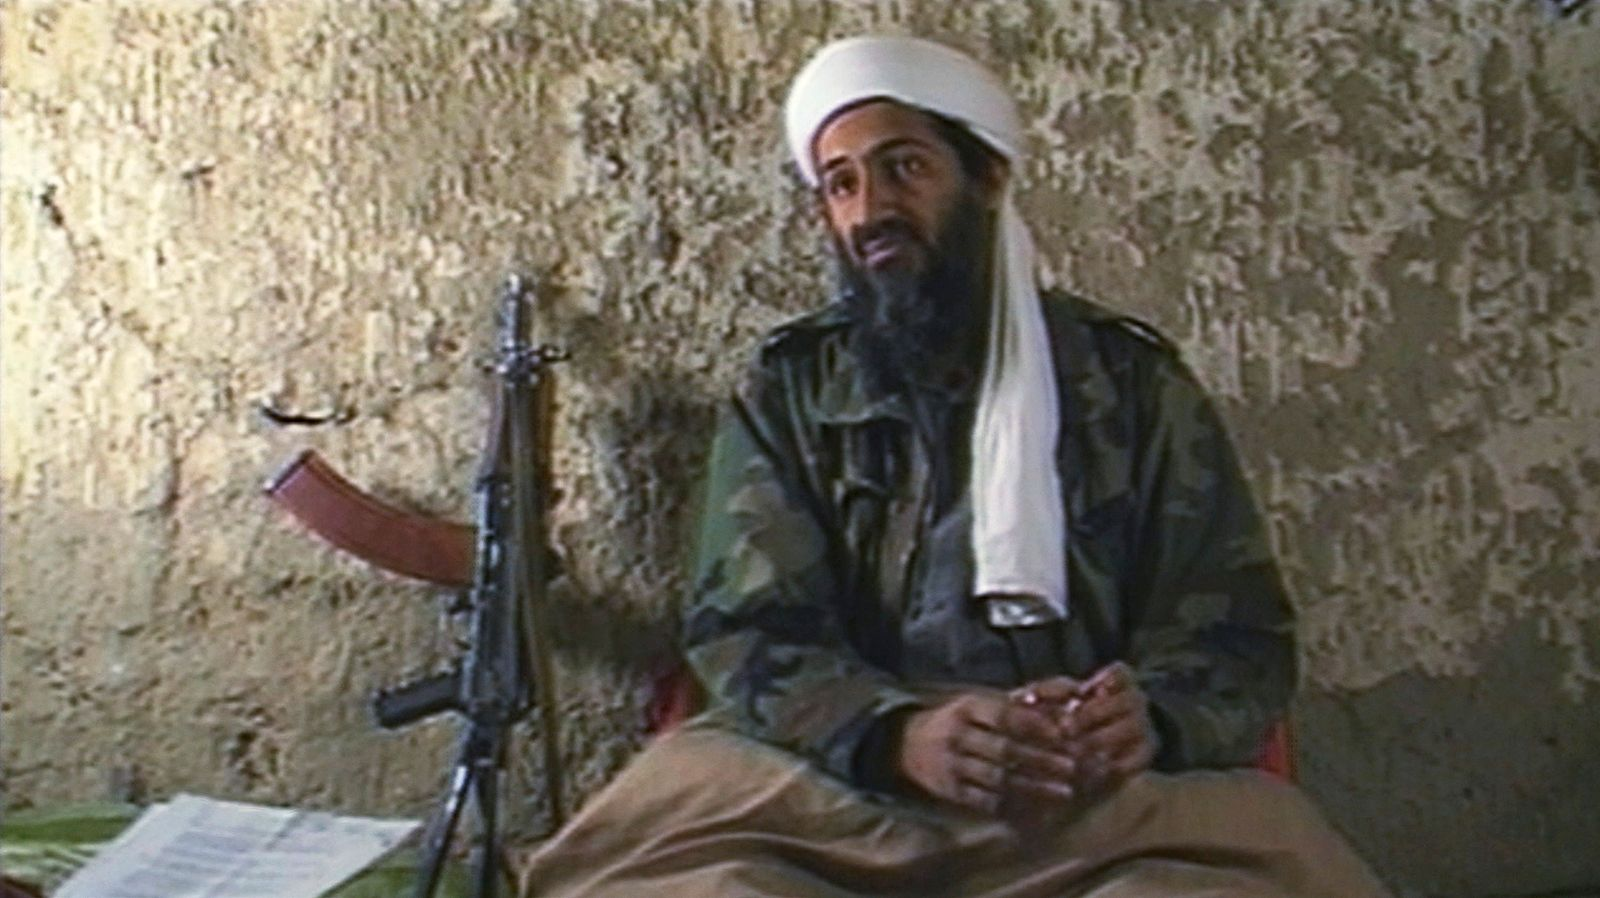 Exclusive 1998 Interview With Osama Bin Laden